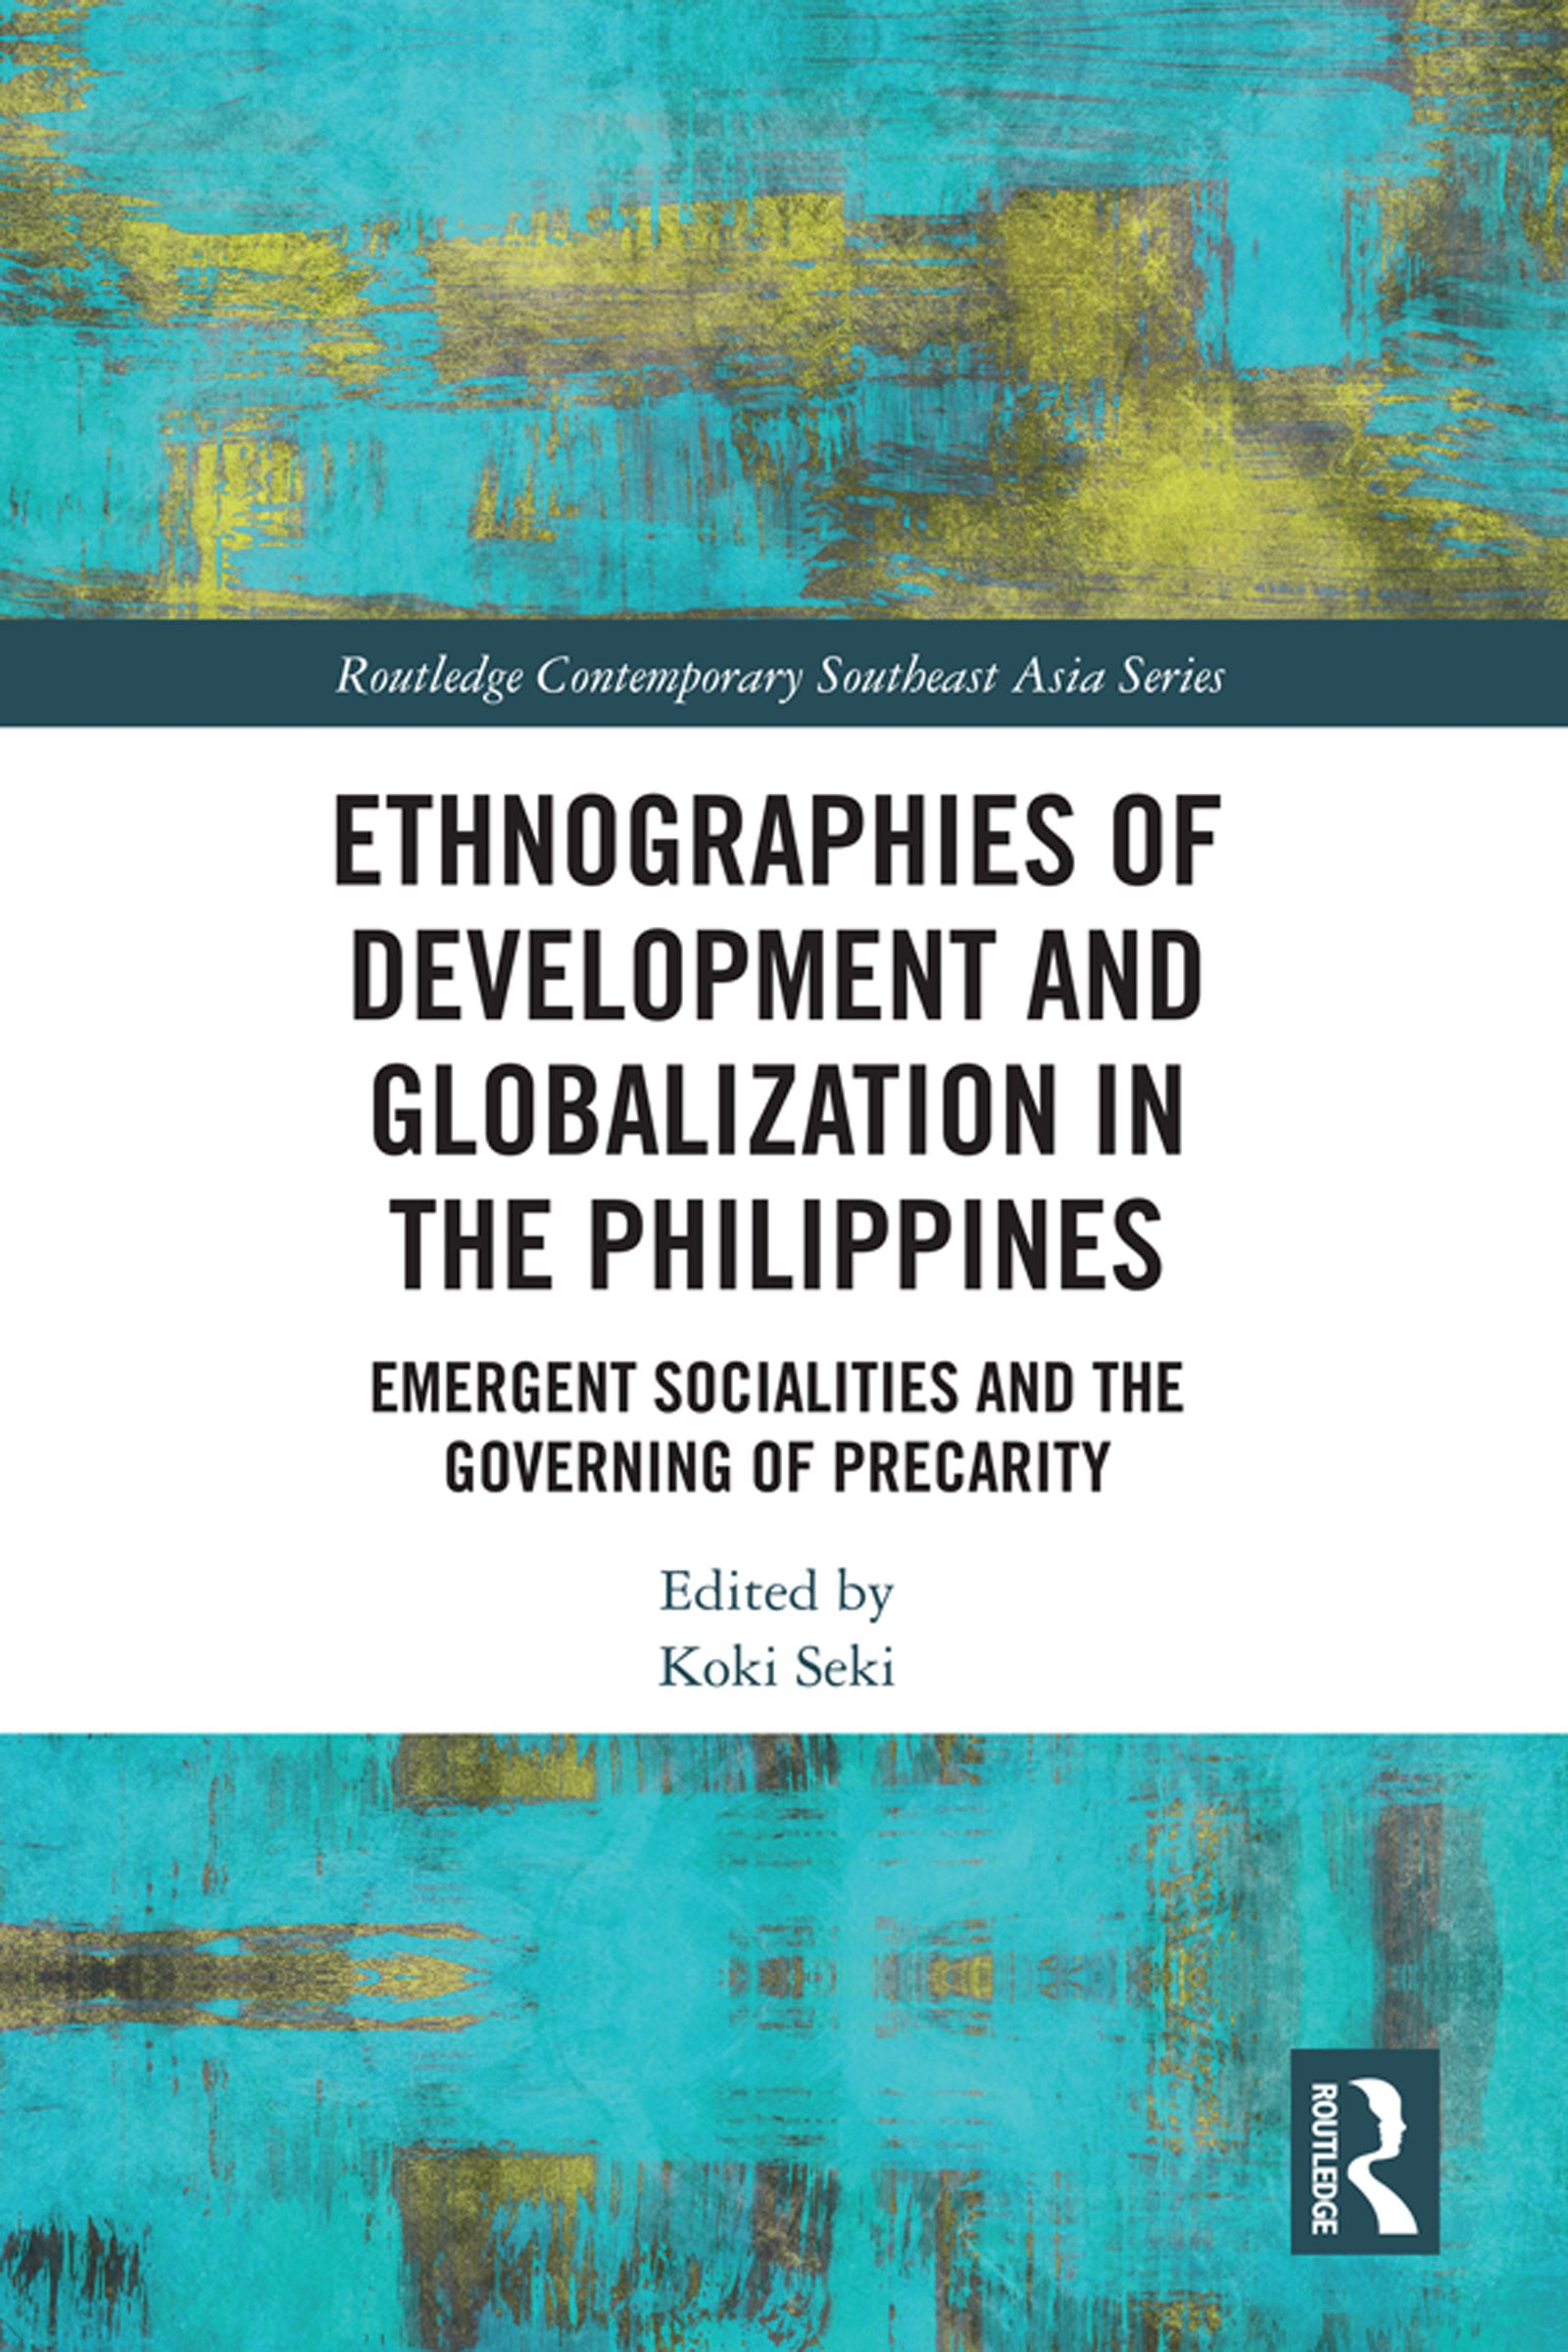 Ethnographies of Development and Globalization in the Philippines